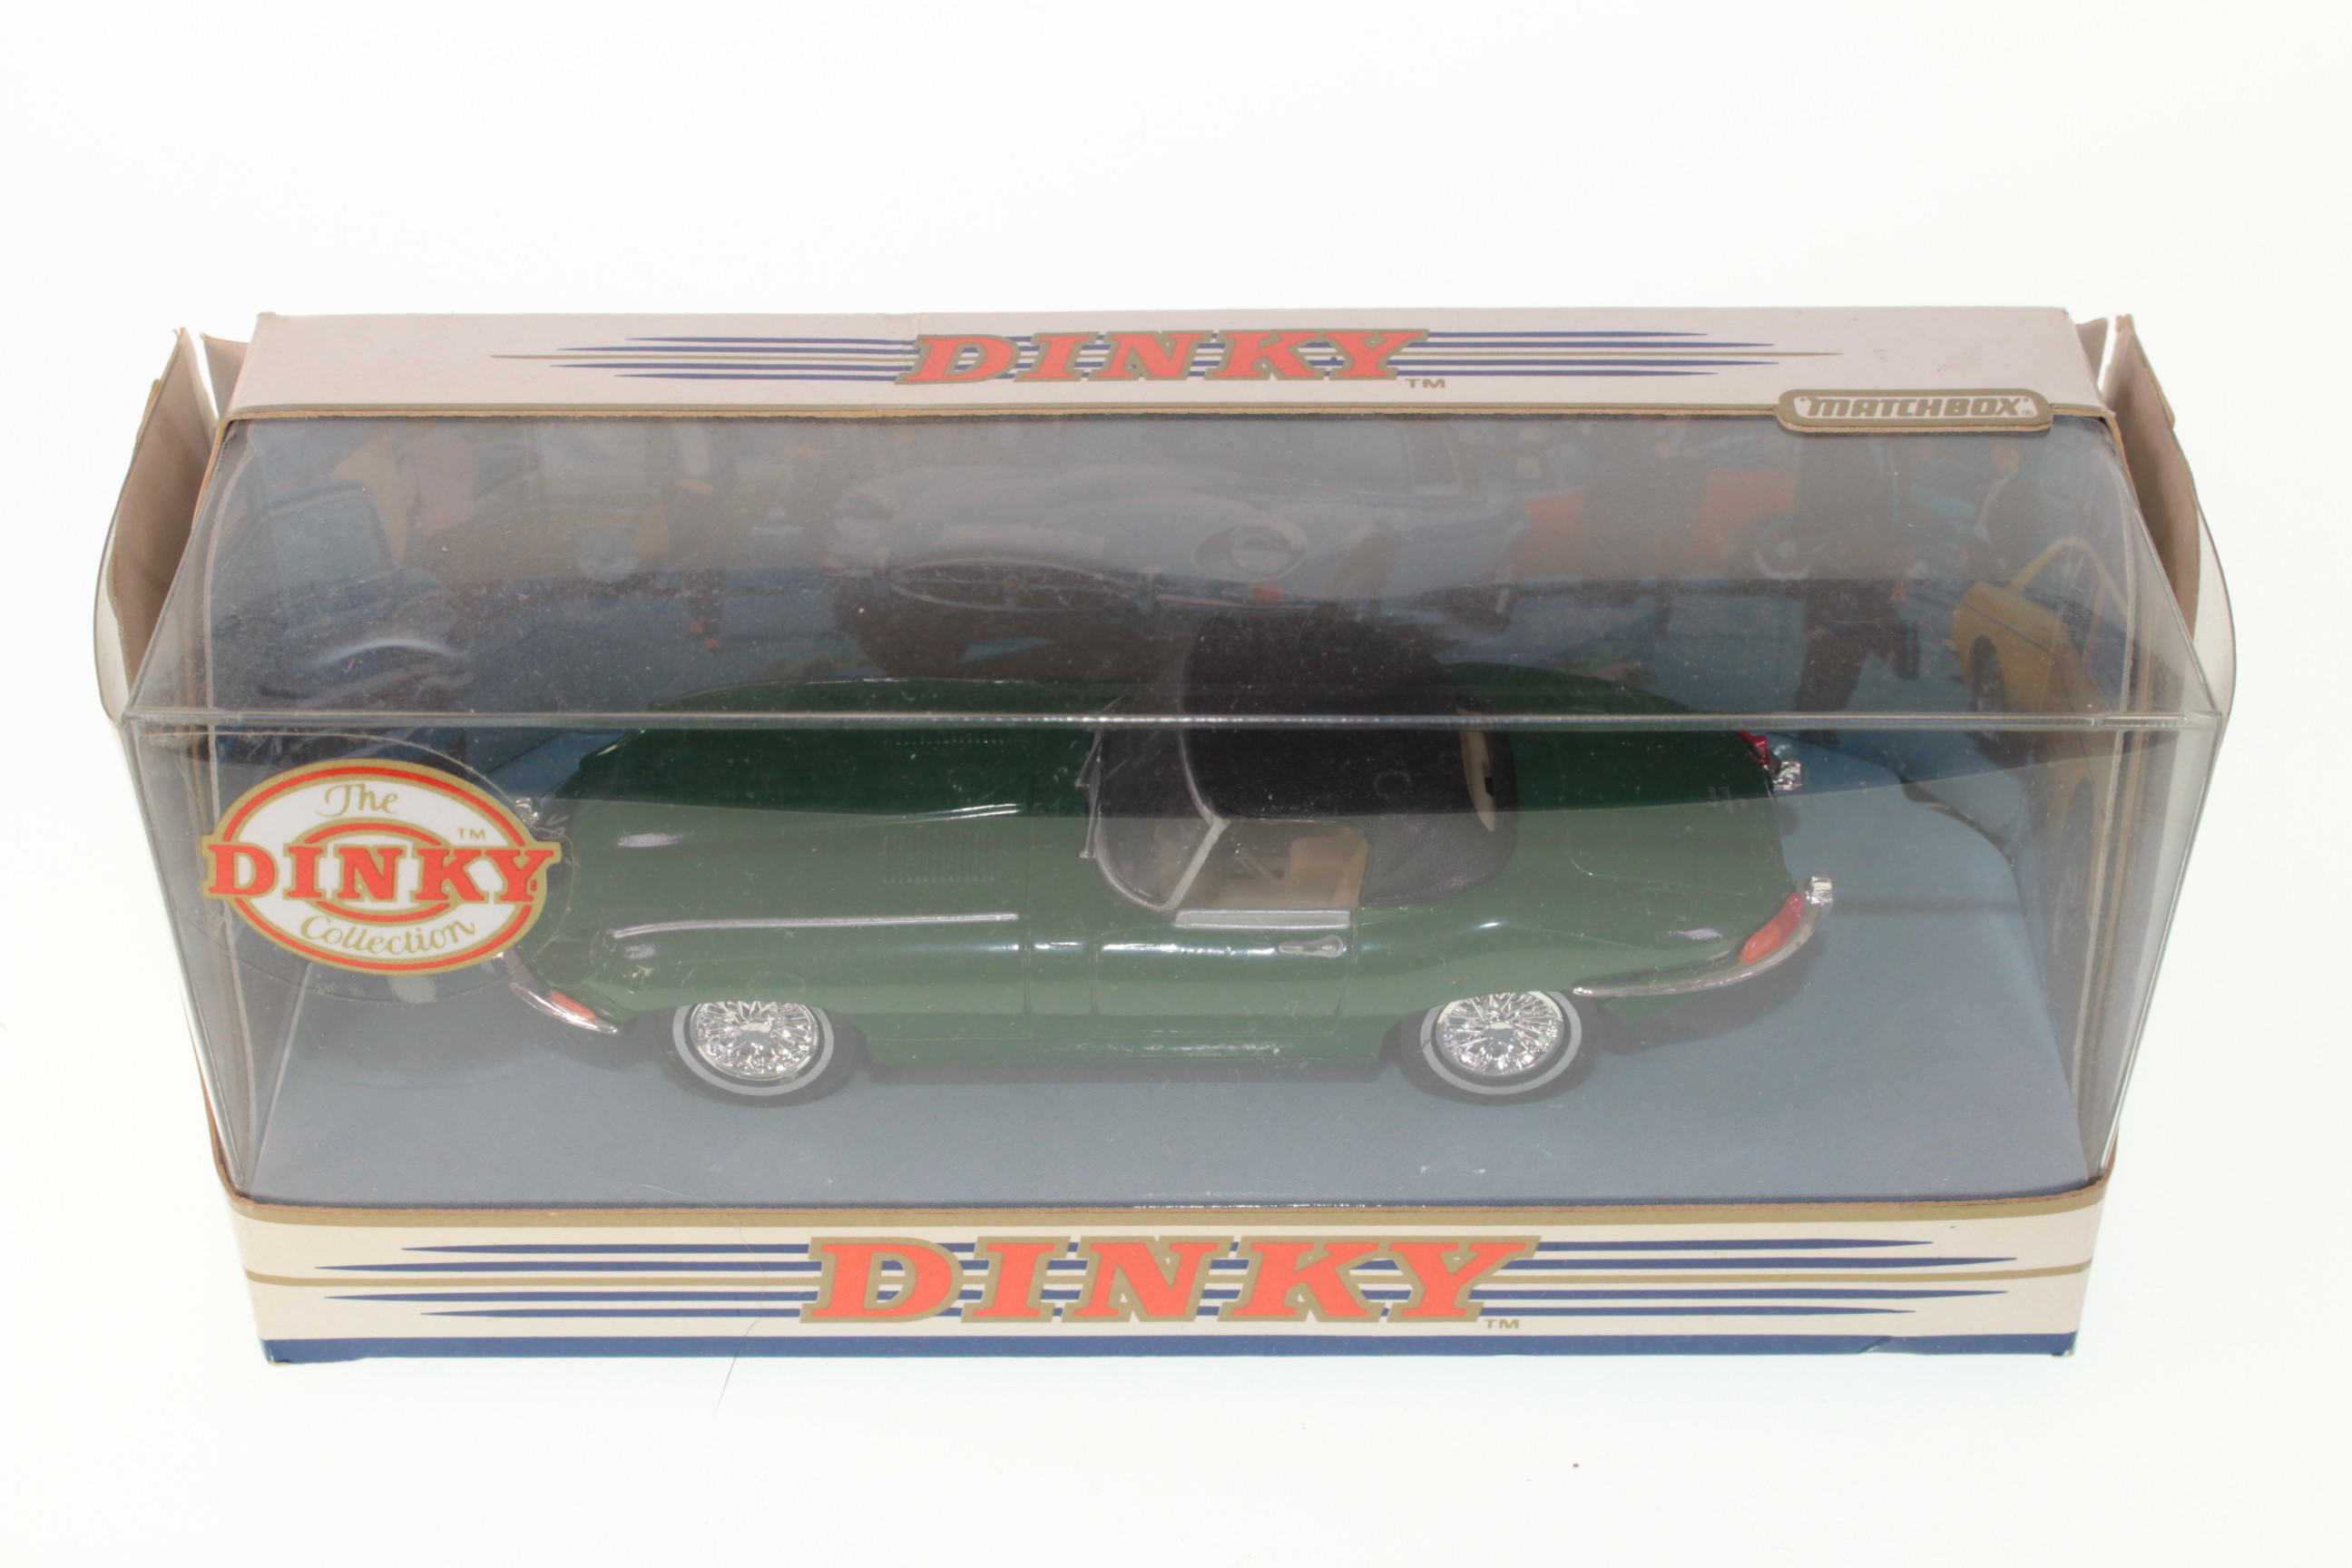 Matchbox Dinky DY1, 1968 E Type Jaguar - Buy, Sell, Review & Free ...